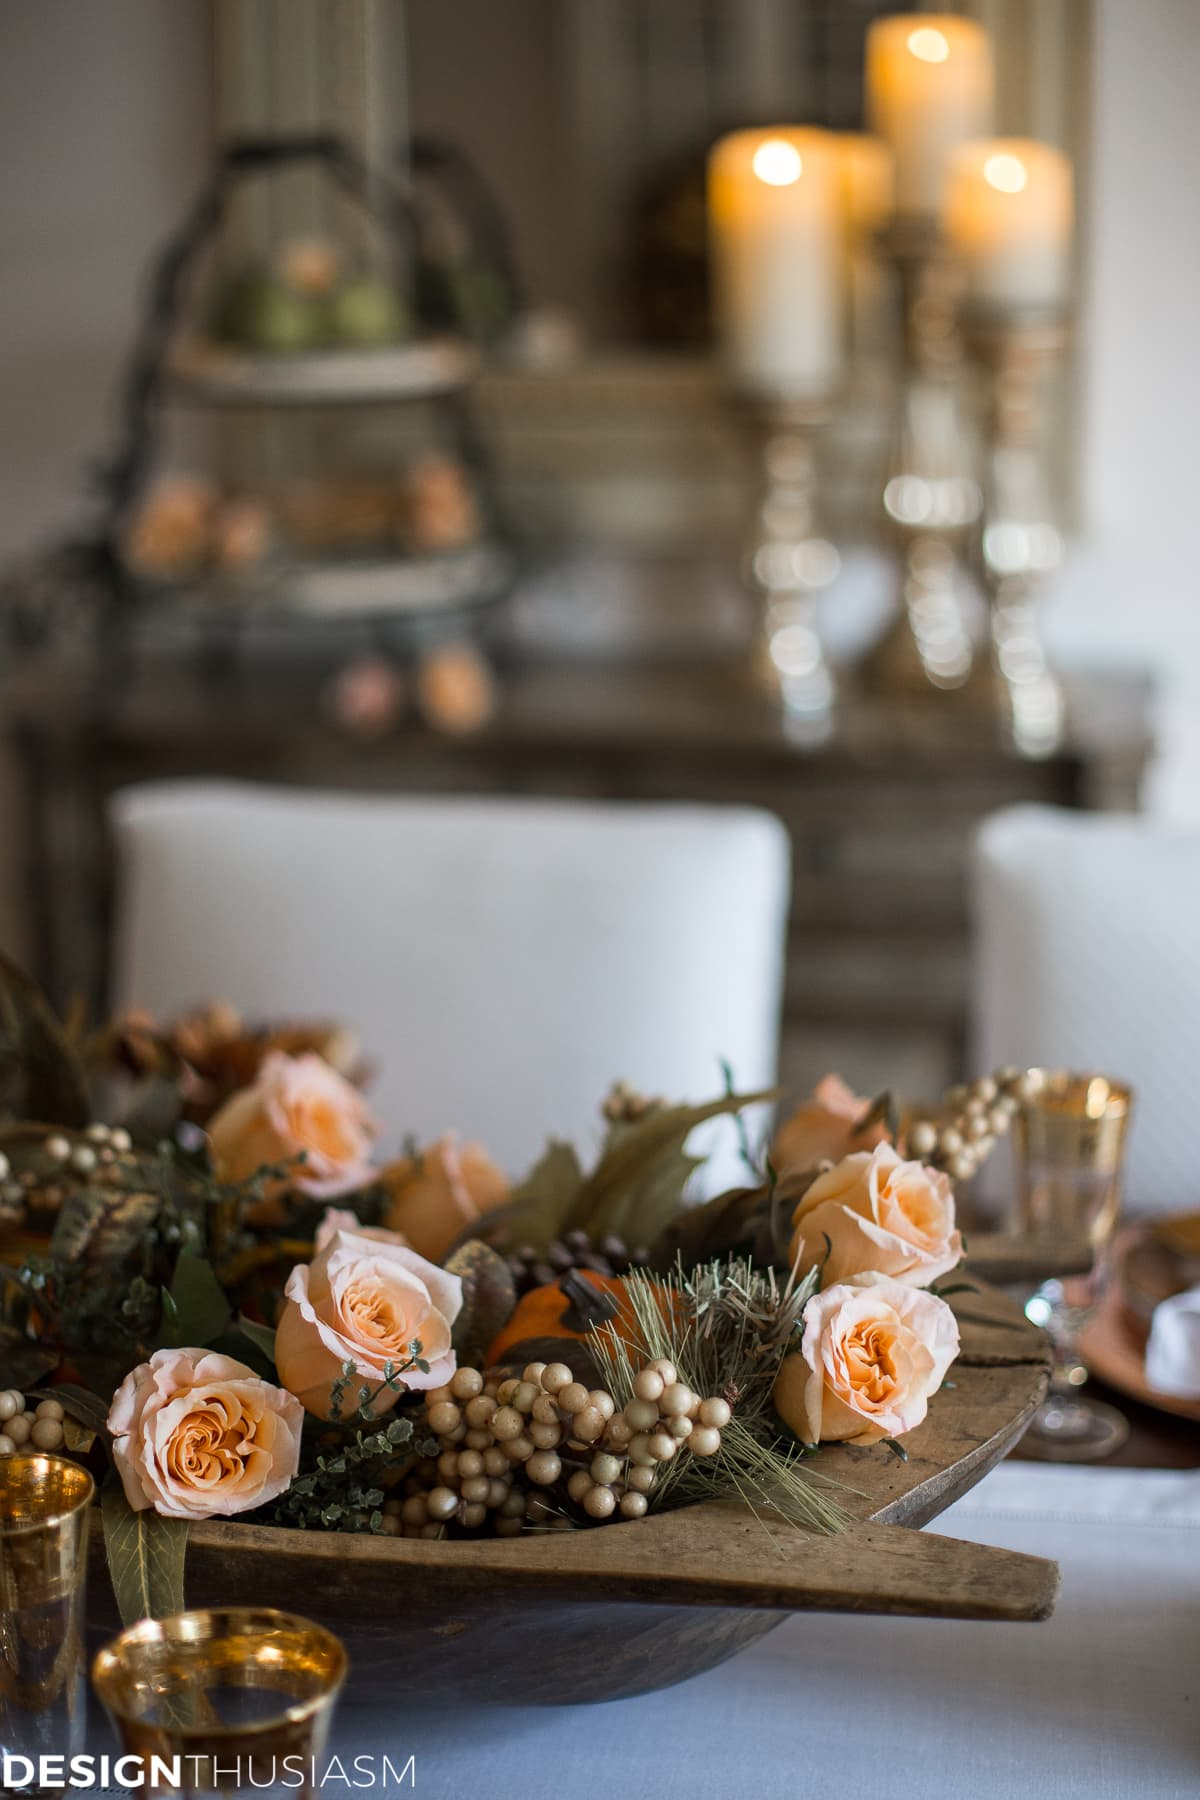 Using Fall Door Decorations to Dress Up Your Thanksgiving Table - designthusiasm